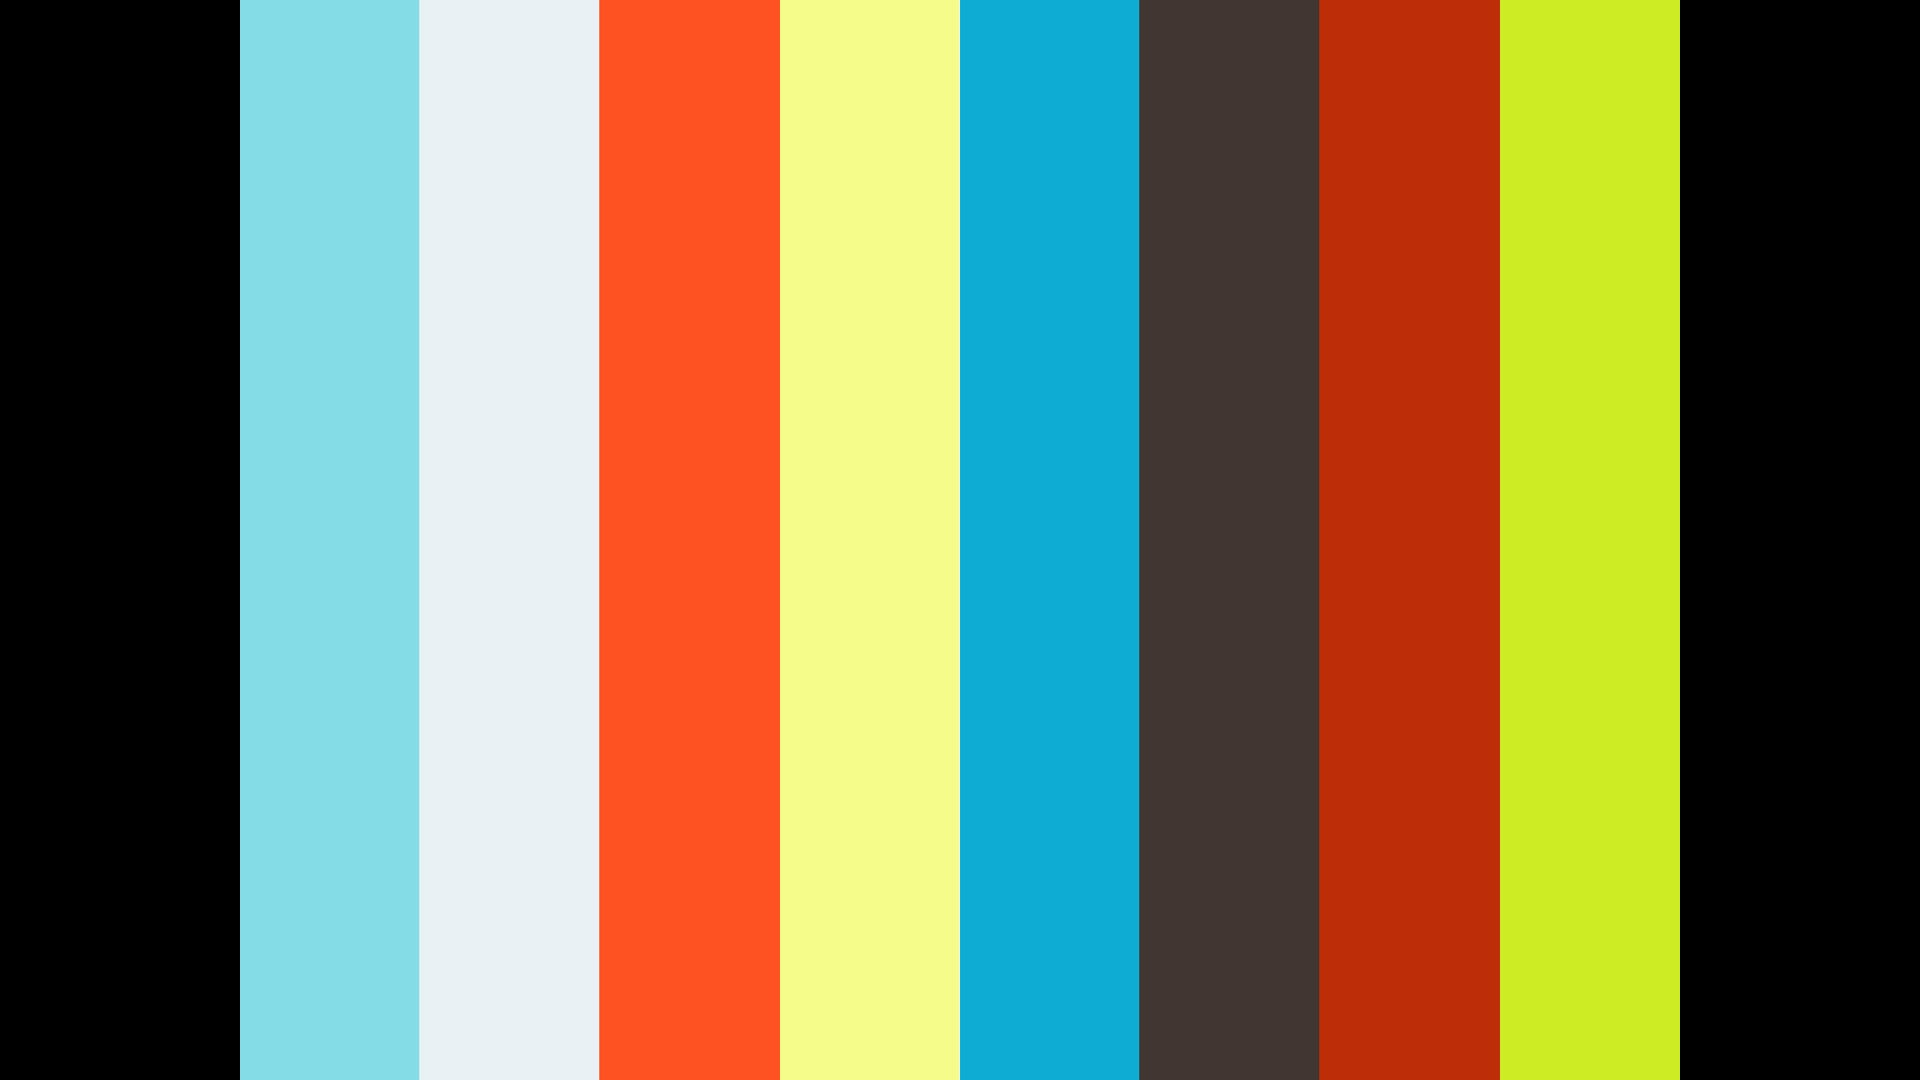 Go FINISH 2020 - Andrew Binda